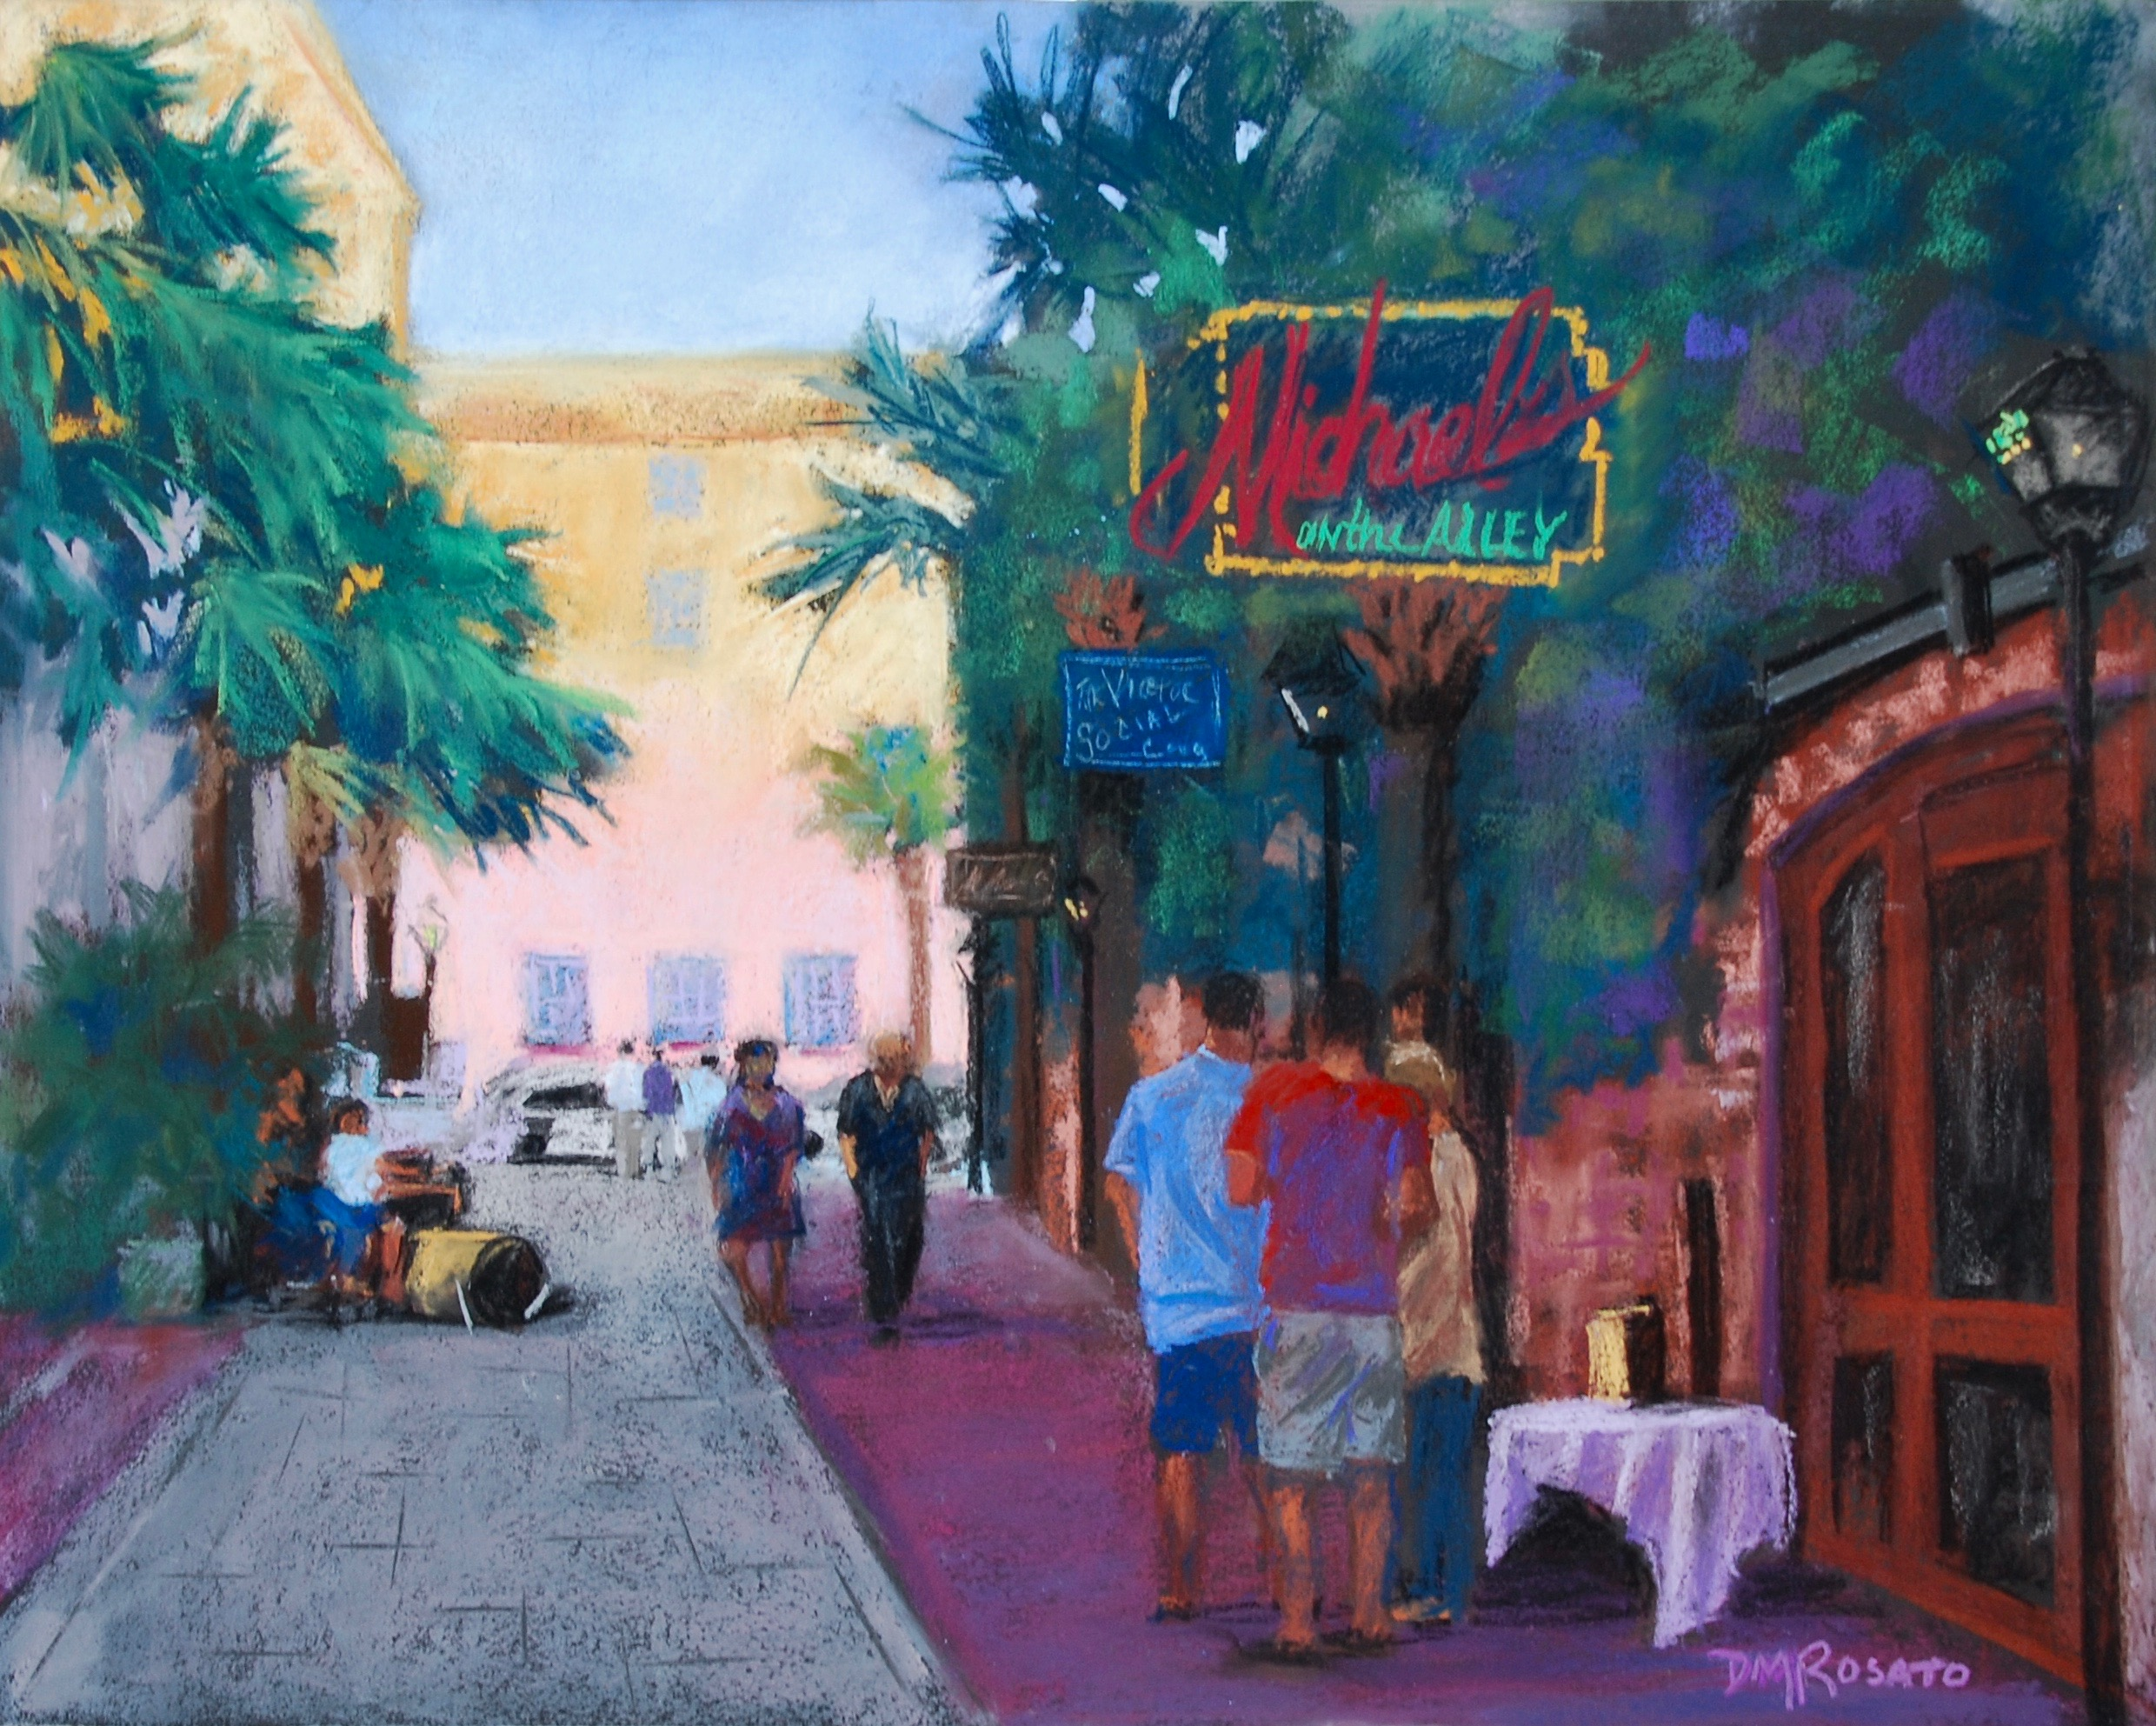 Michael's in the Alley 20x16